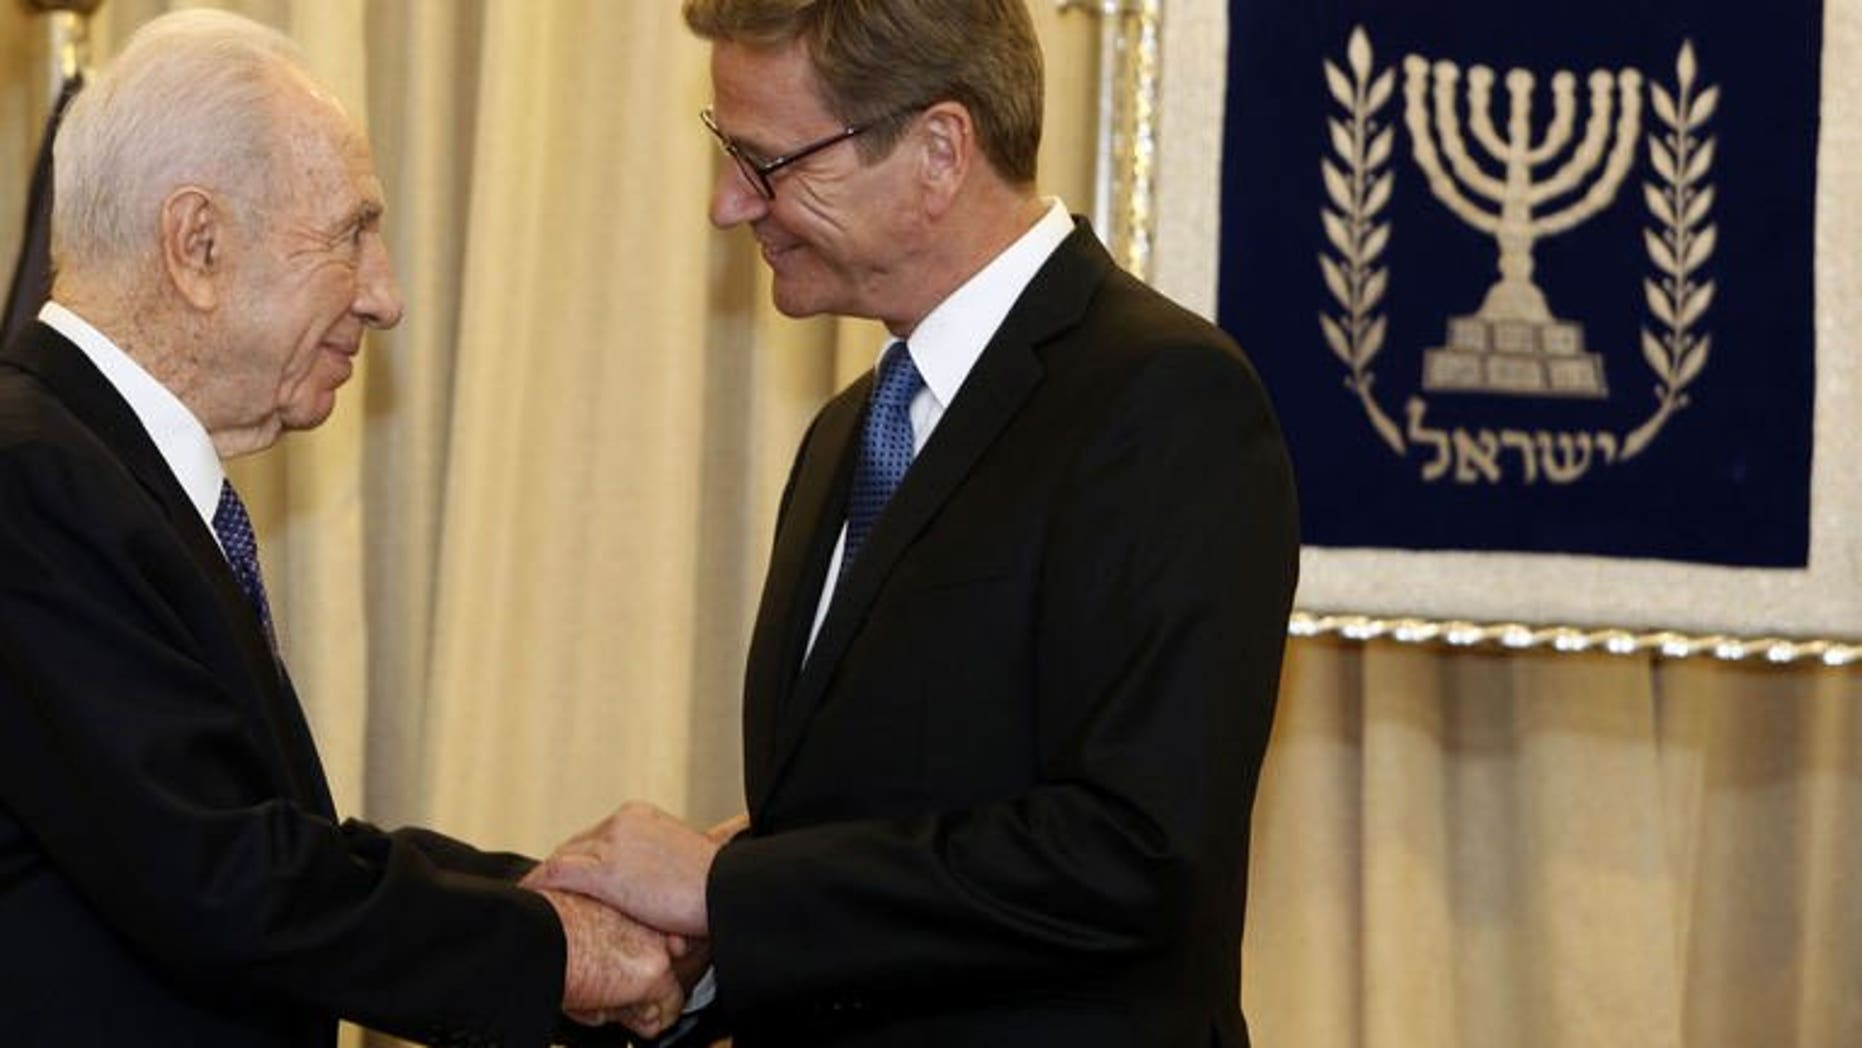 German Foreign Minister Guido Westerwelle (R) is greeted by Israeli President Shimon Peres (L) at the presidential residency in Jerusalem on August 11, 2013. Westerwelle met Sunday with Israeli officials on a visit to support nascent peace talks, offering to try to soften a European ban on dealings with Jewish settlements.